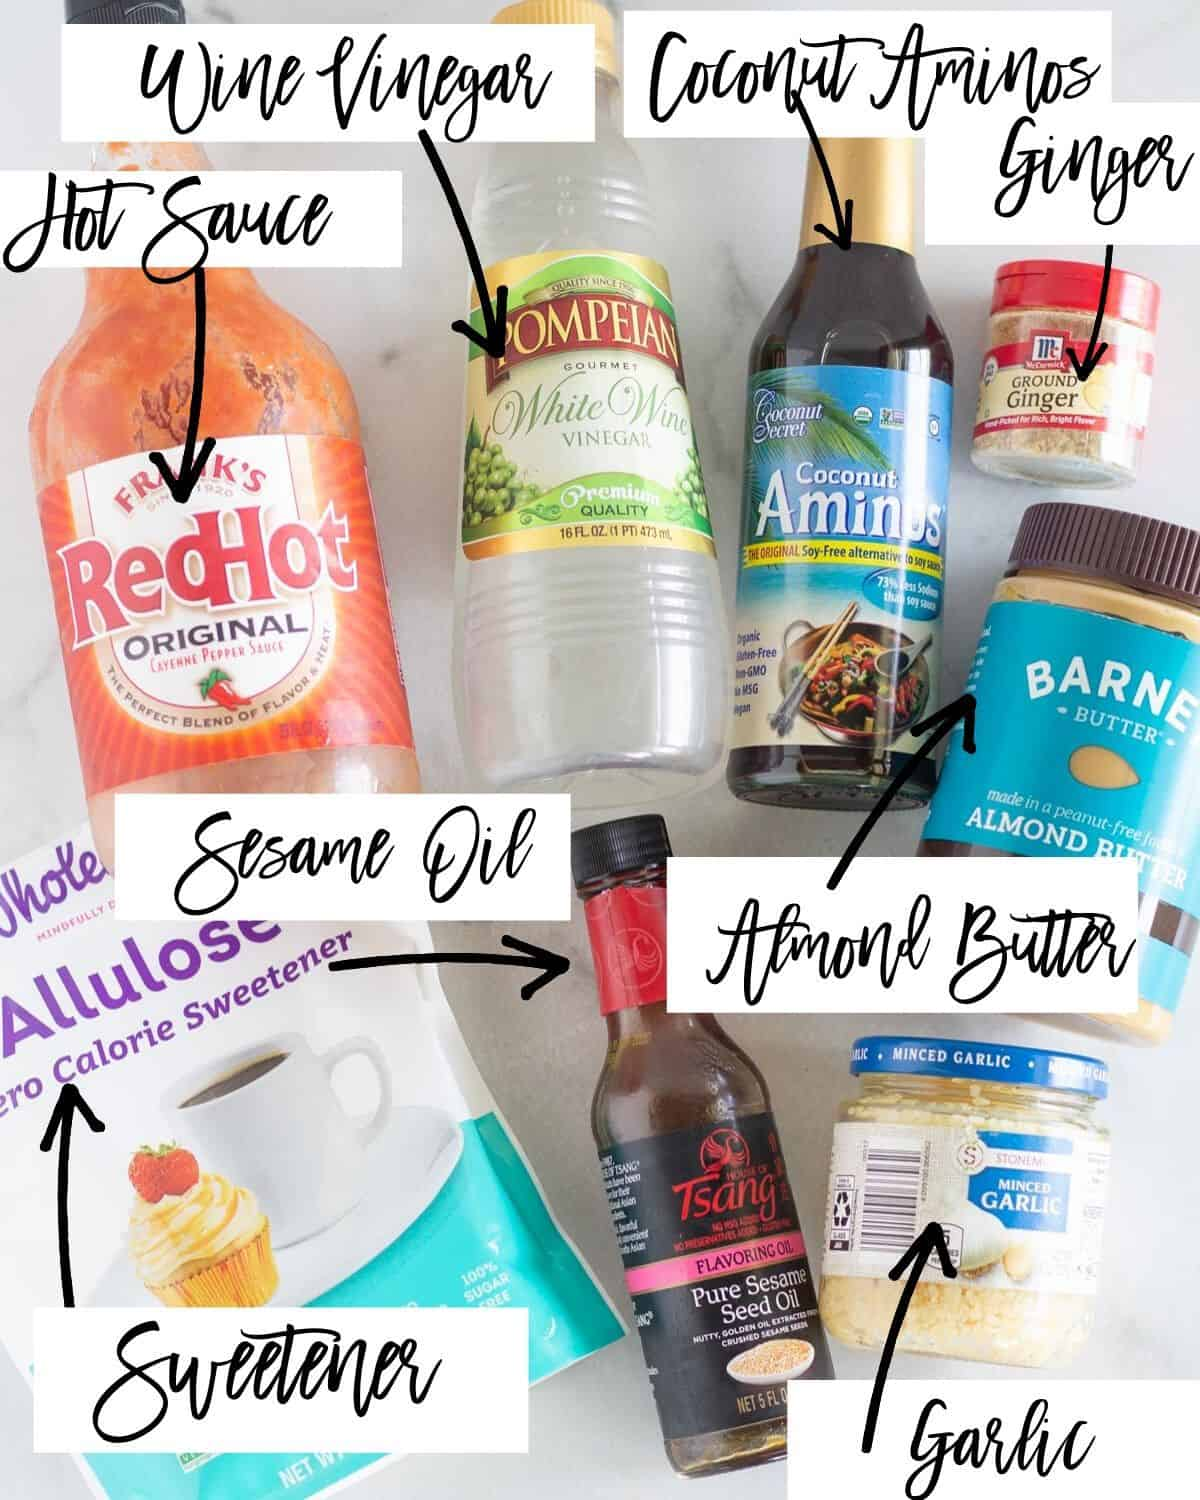 dressing ingredients with labels